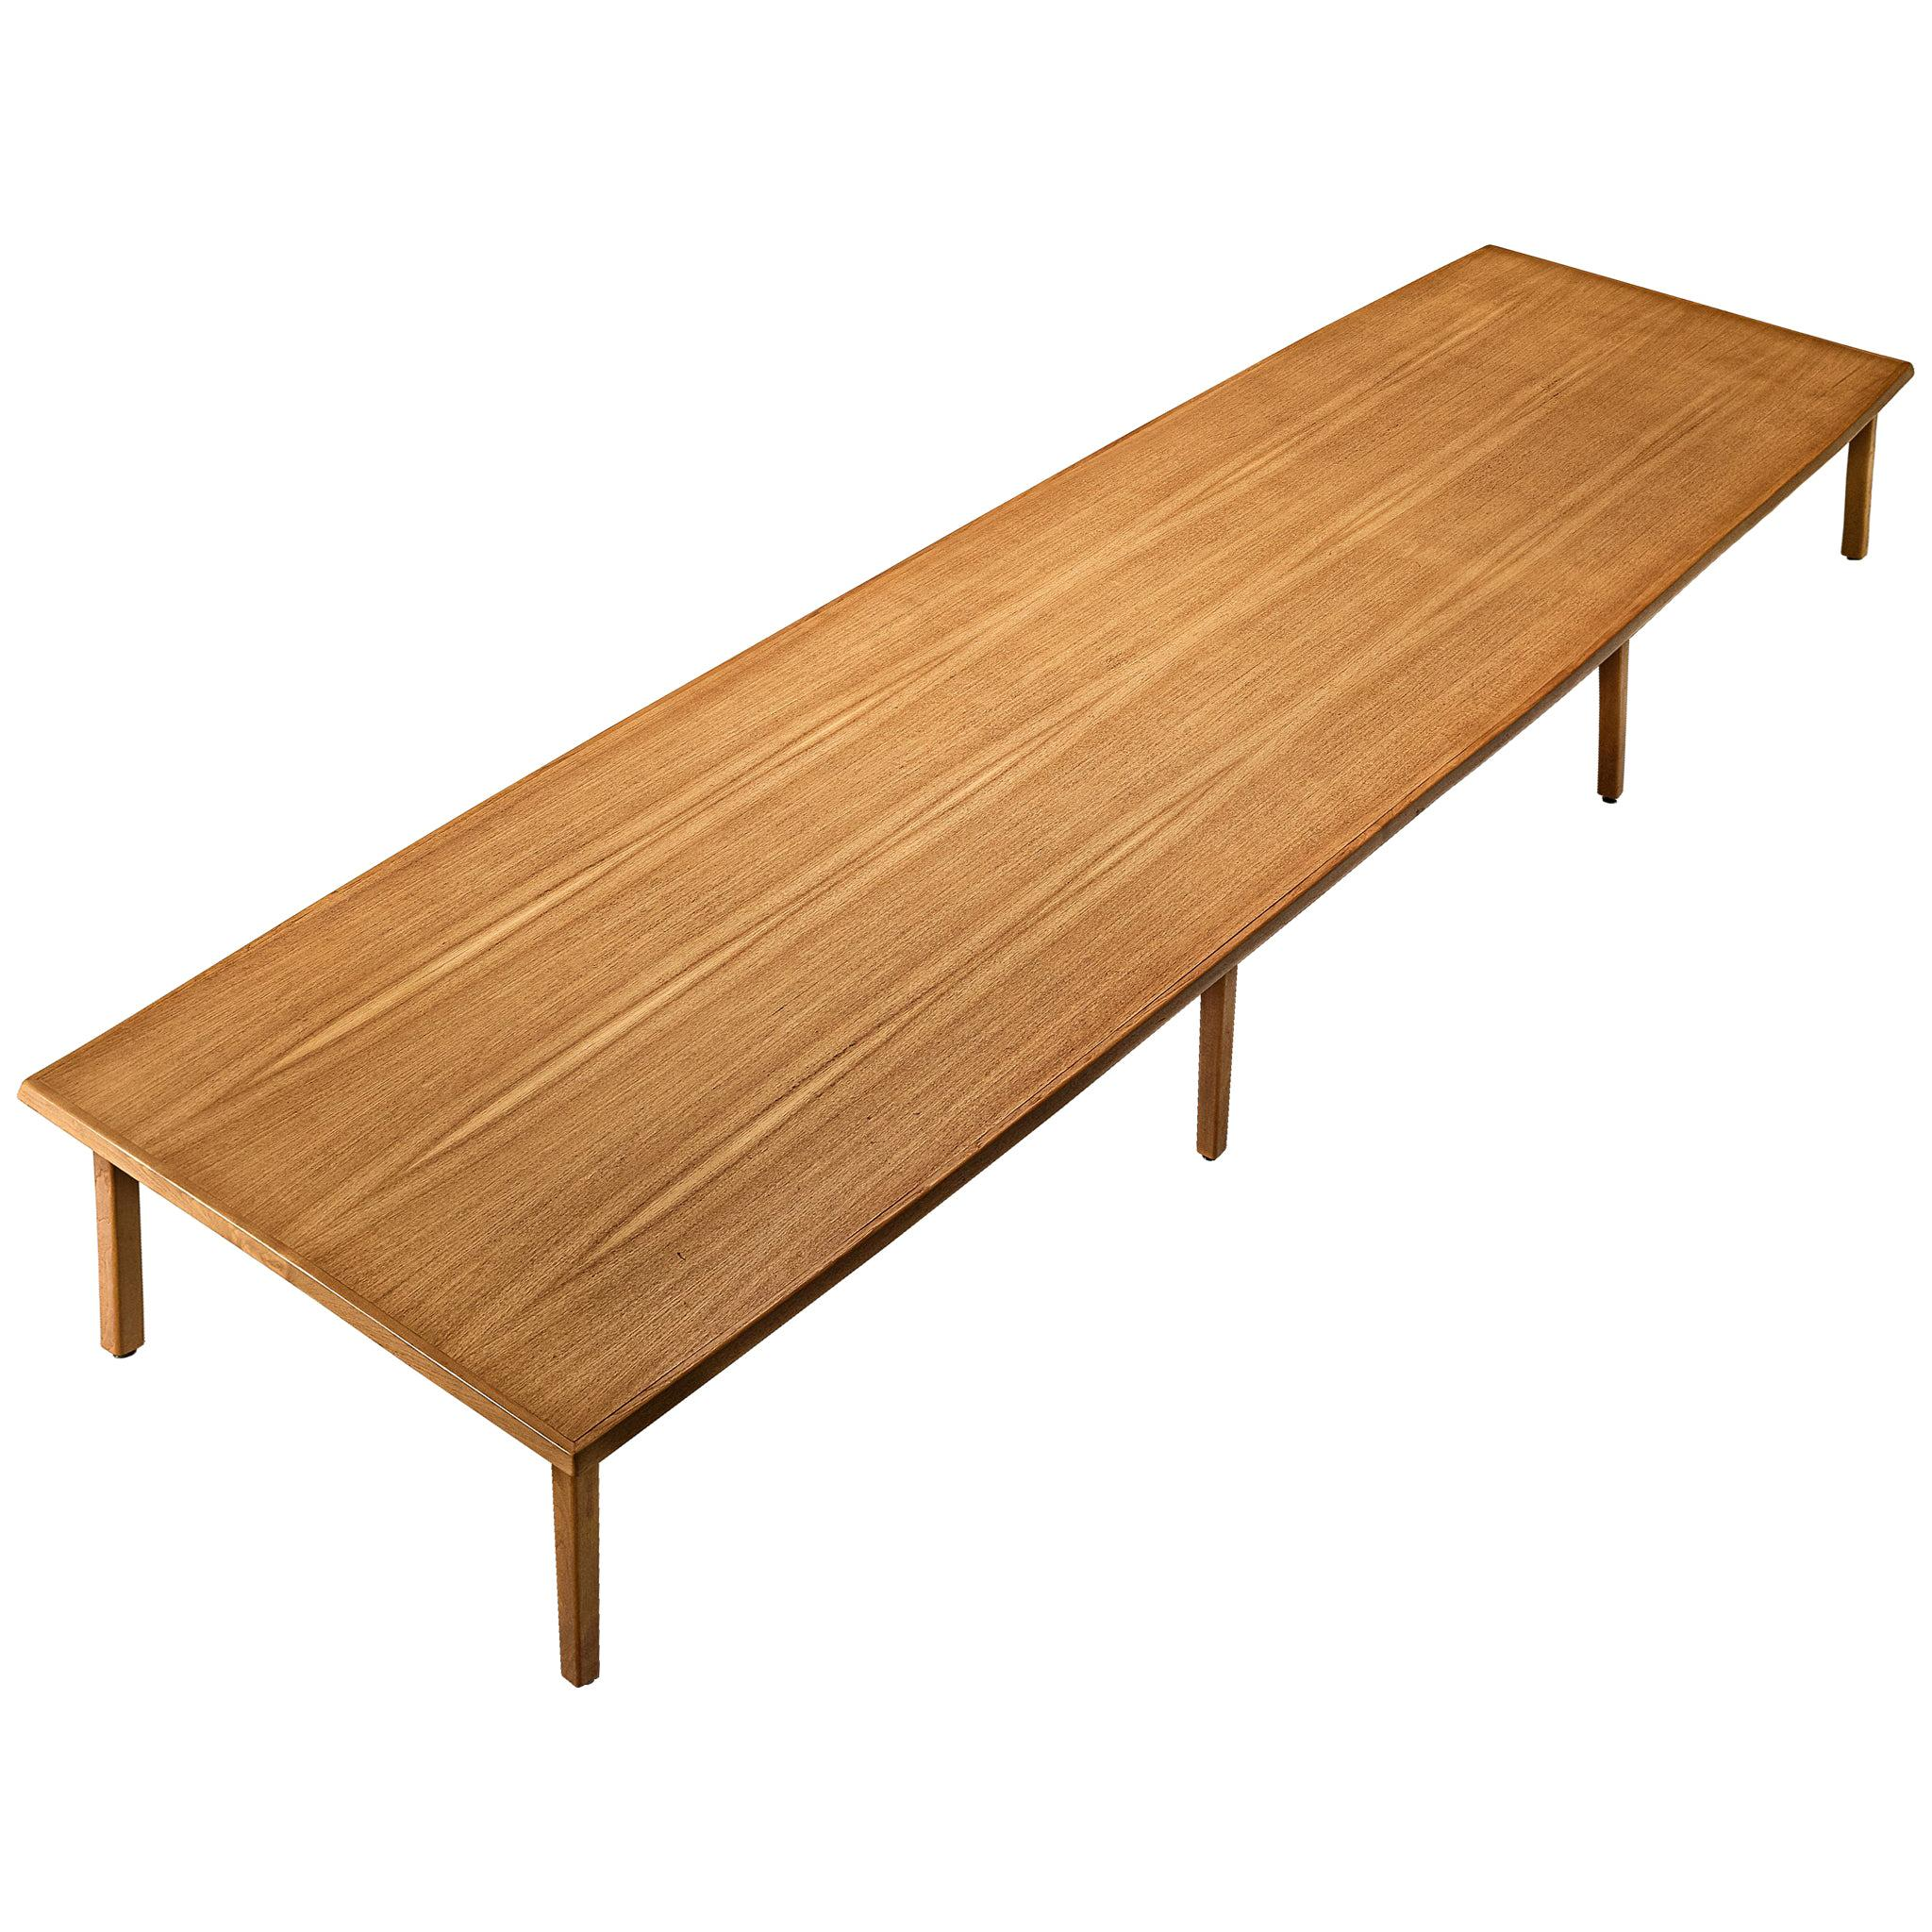 Large Danish Conference or Dining Table in Teak